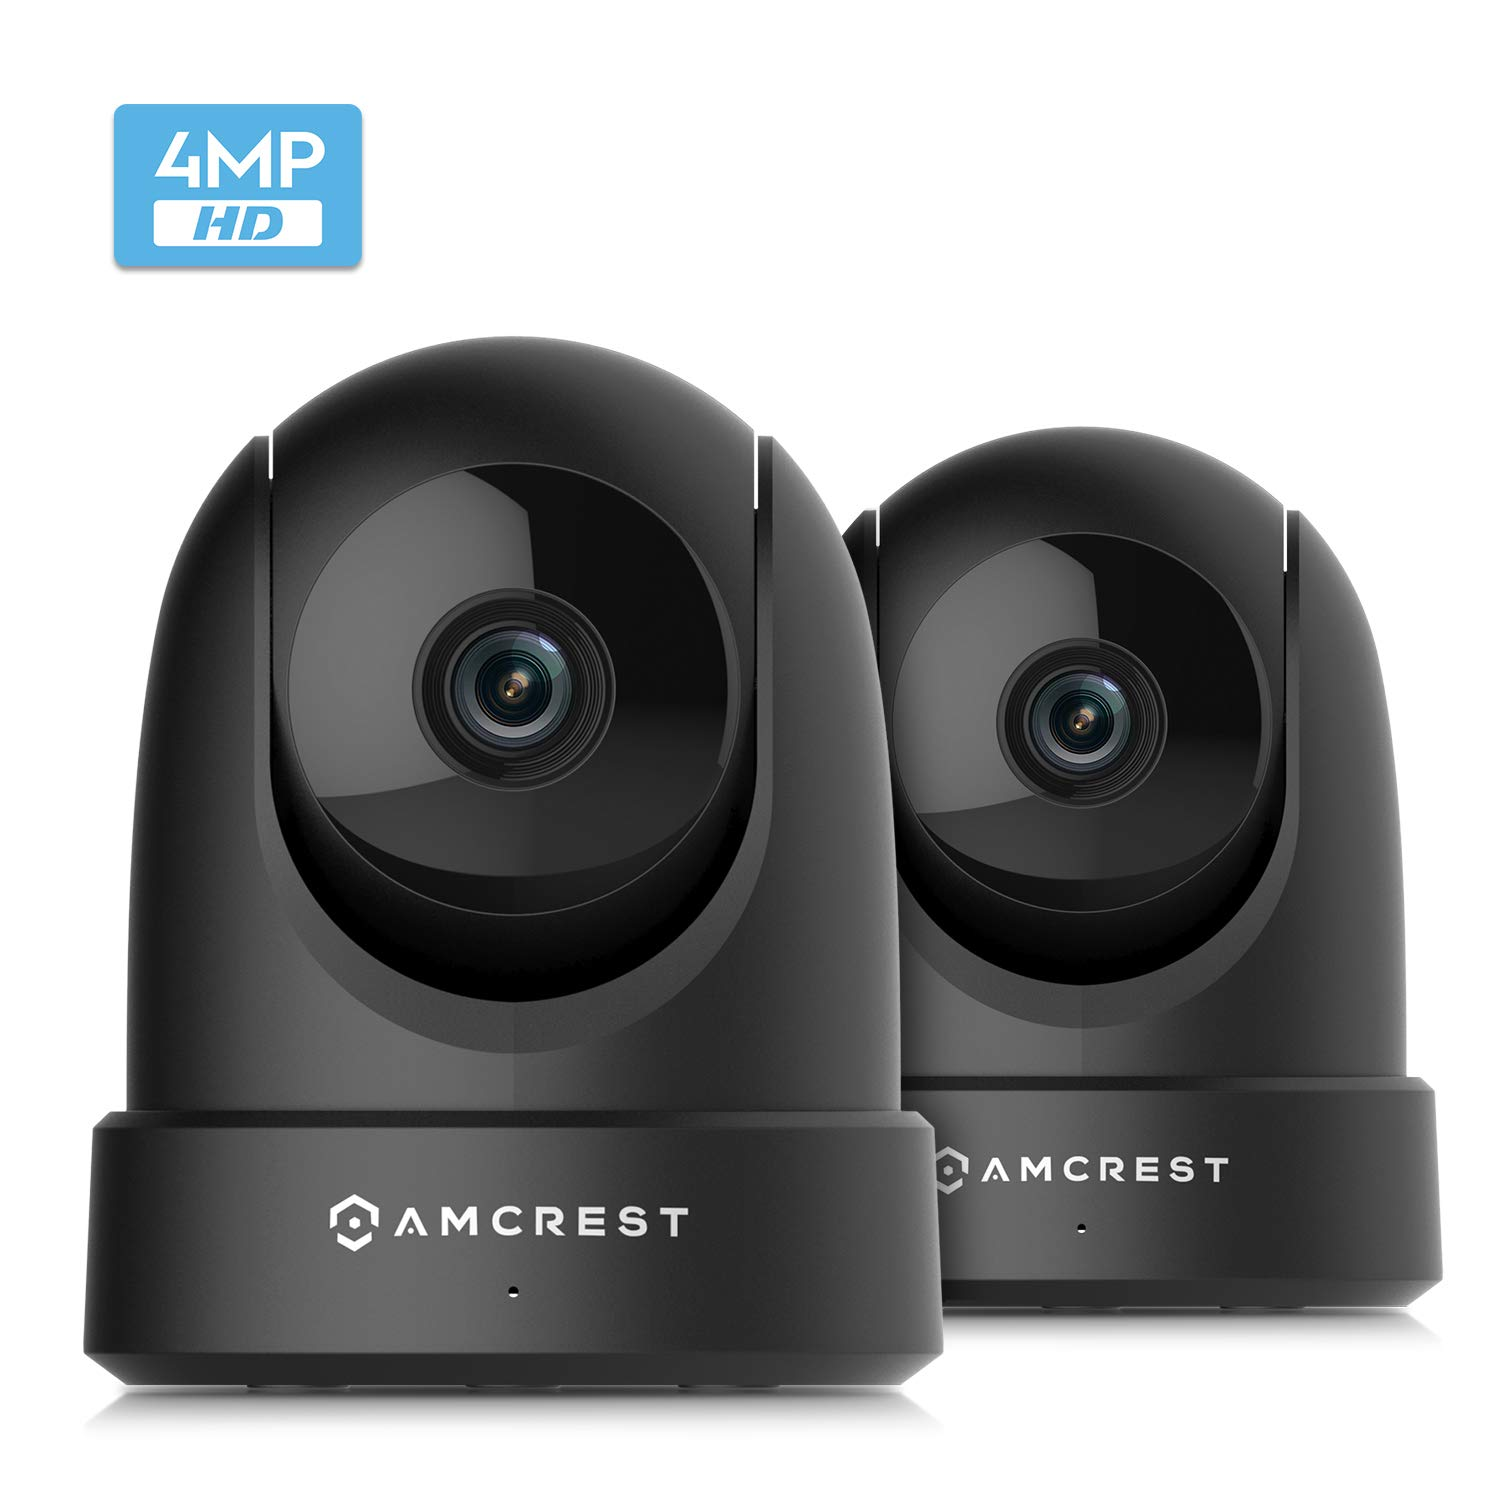 2-Pack Amcrest 4MP UltraHD Indoor WiFi Camera, Security IP Camera with Pan/Tilt, Two-Way Audio, Remote Viewing, Dual-Band 5ghz/2.4ghz, 4-Megapixel @~20FPS, Wide 120° FOV, 2PACK-IP4M-1051B (Black) by Amcrest